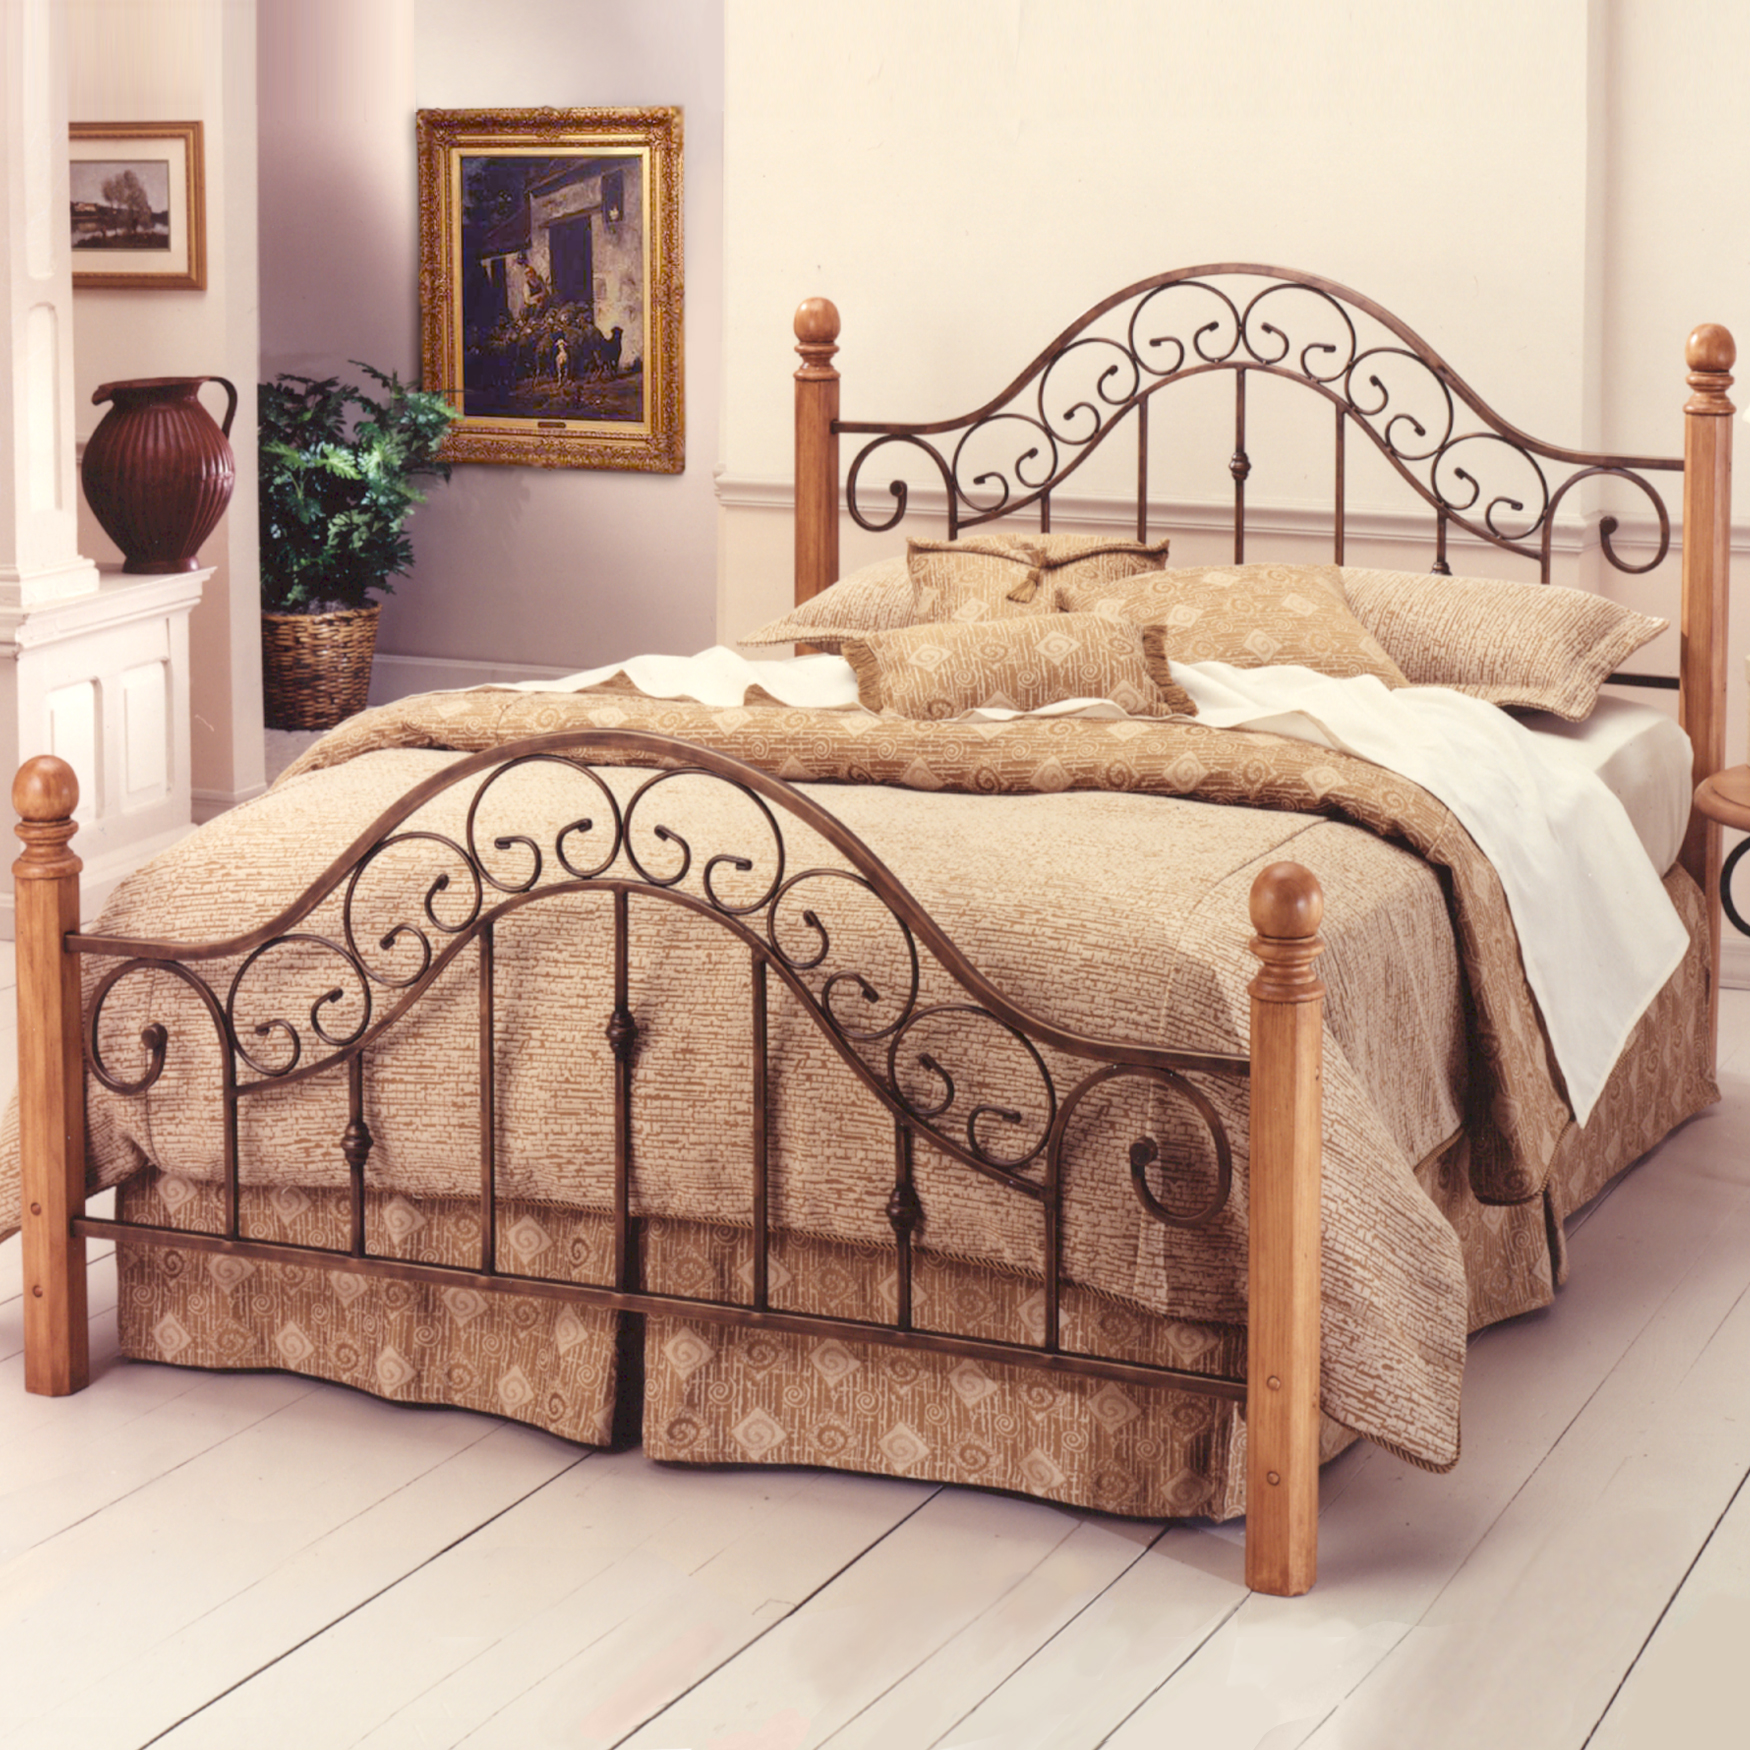 Hillsdale San Marco Bed with Bed Frame,